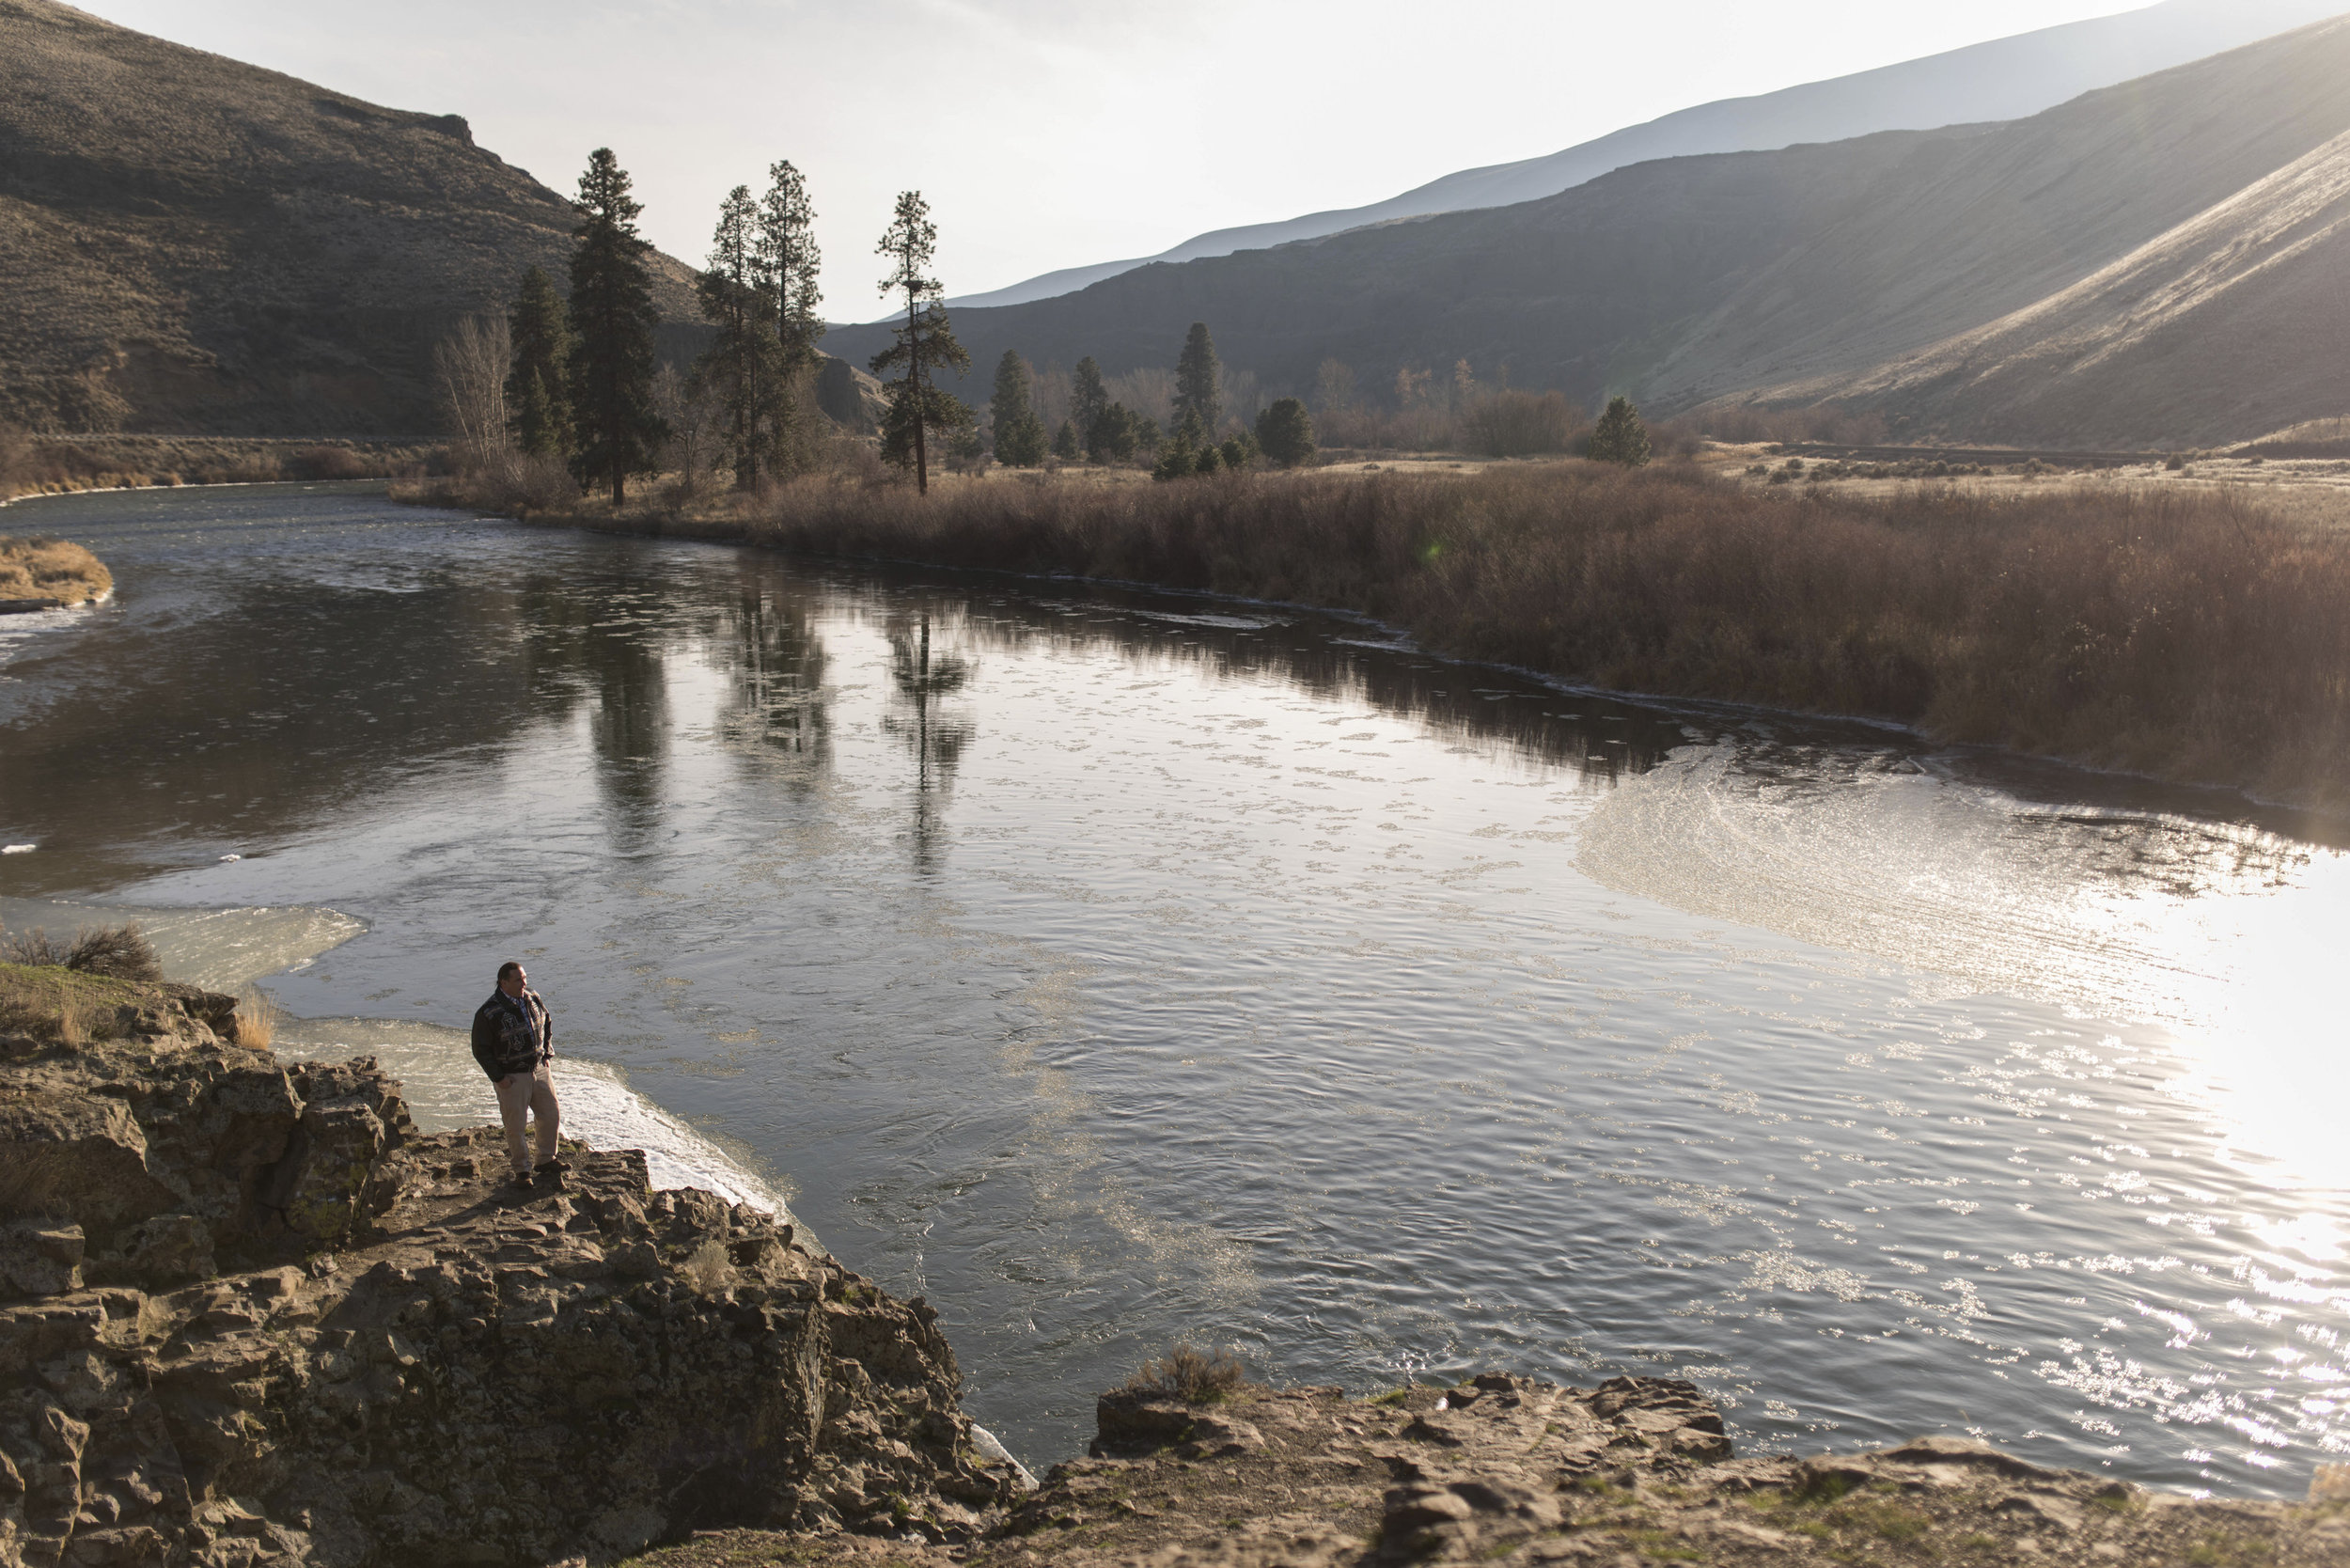 Phil Rigdon, of the Yakama Nation, stands near the Yakima River. Photo by Steven Gnam